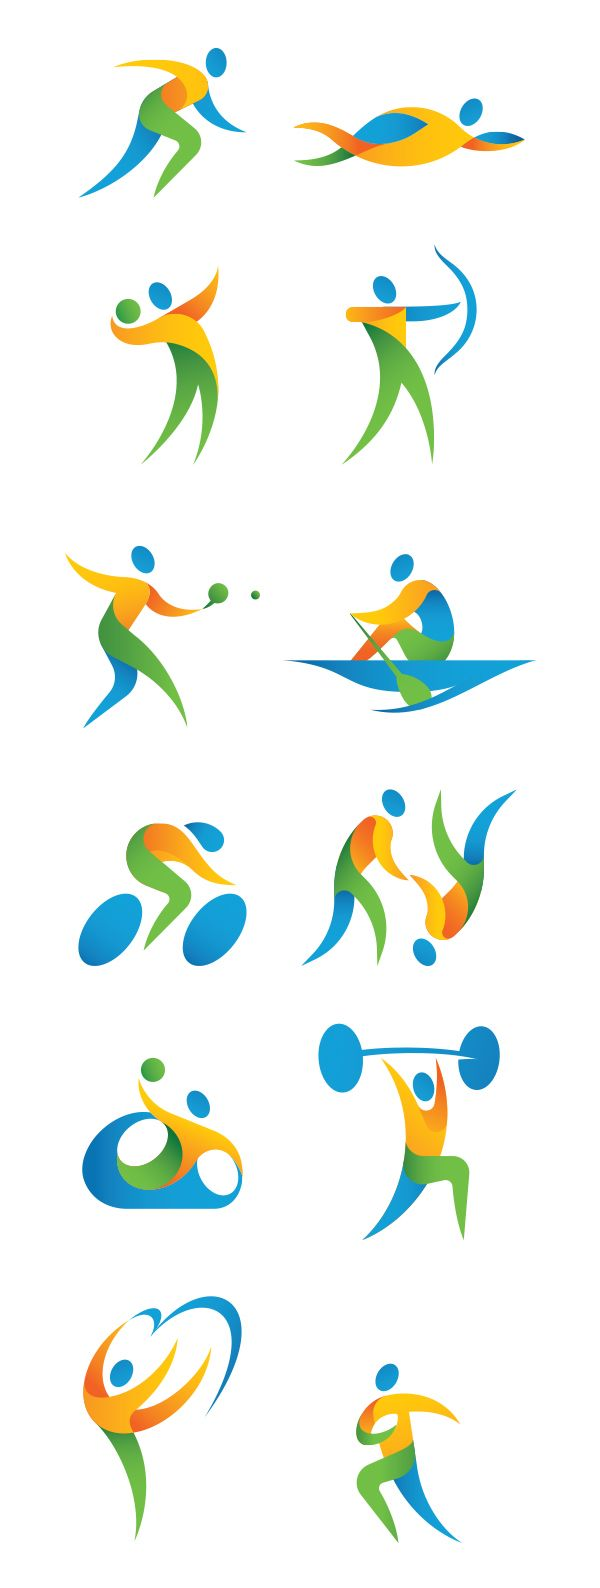 2016 Rio Olympic Pictograms on Behance